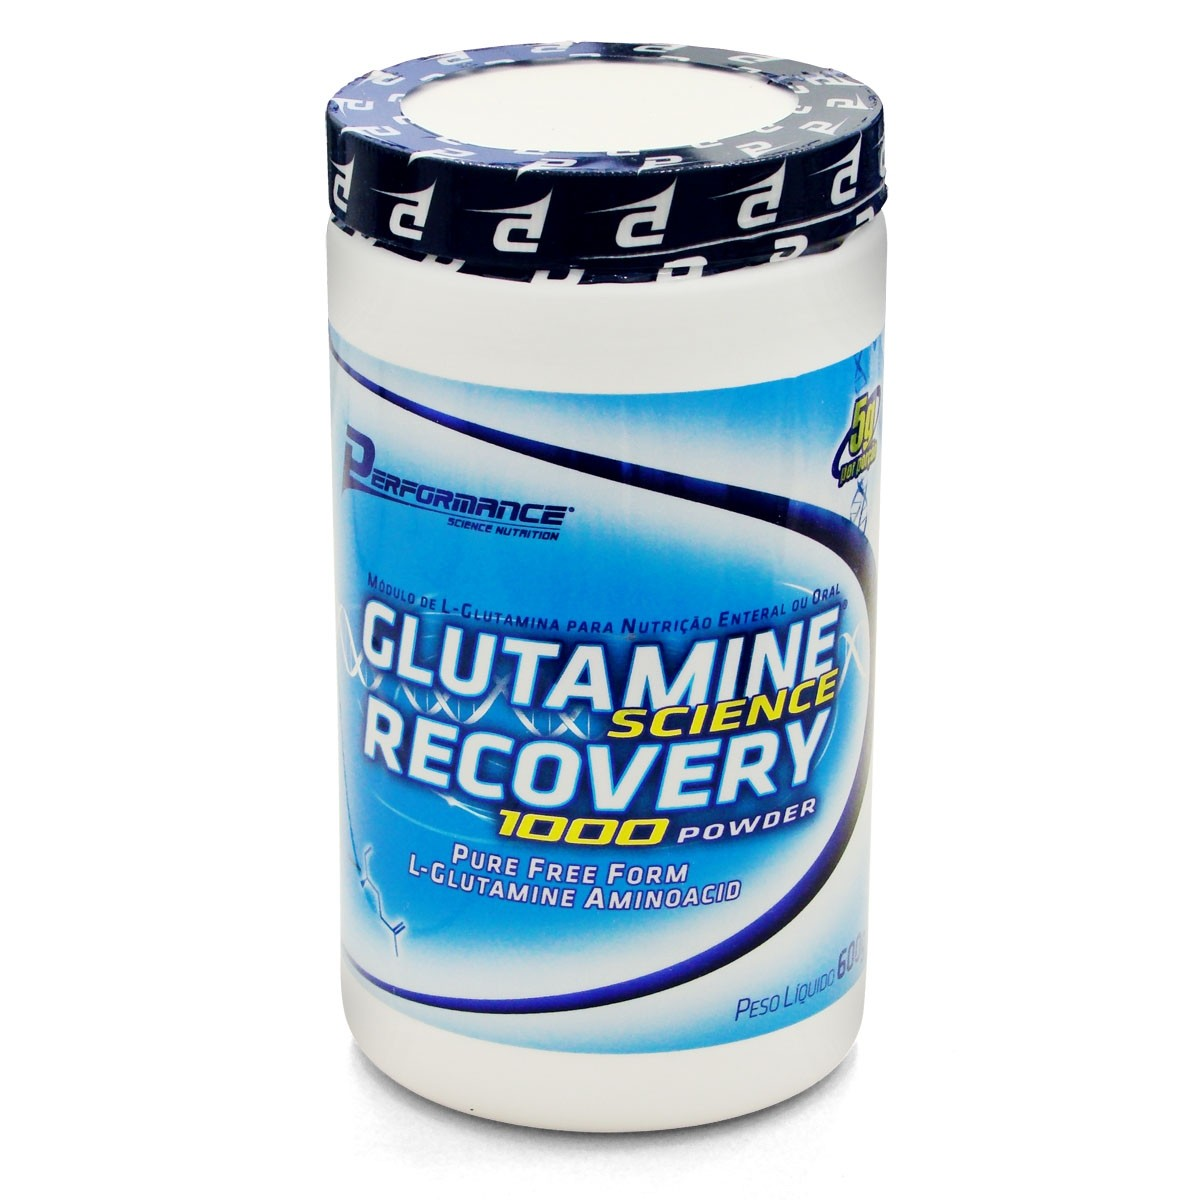 Glutamine Science Recovery 1000 Powder (600g) Performance Nutrition